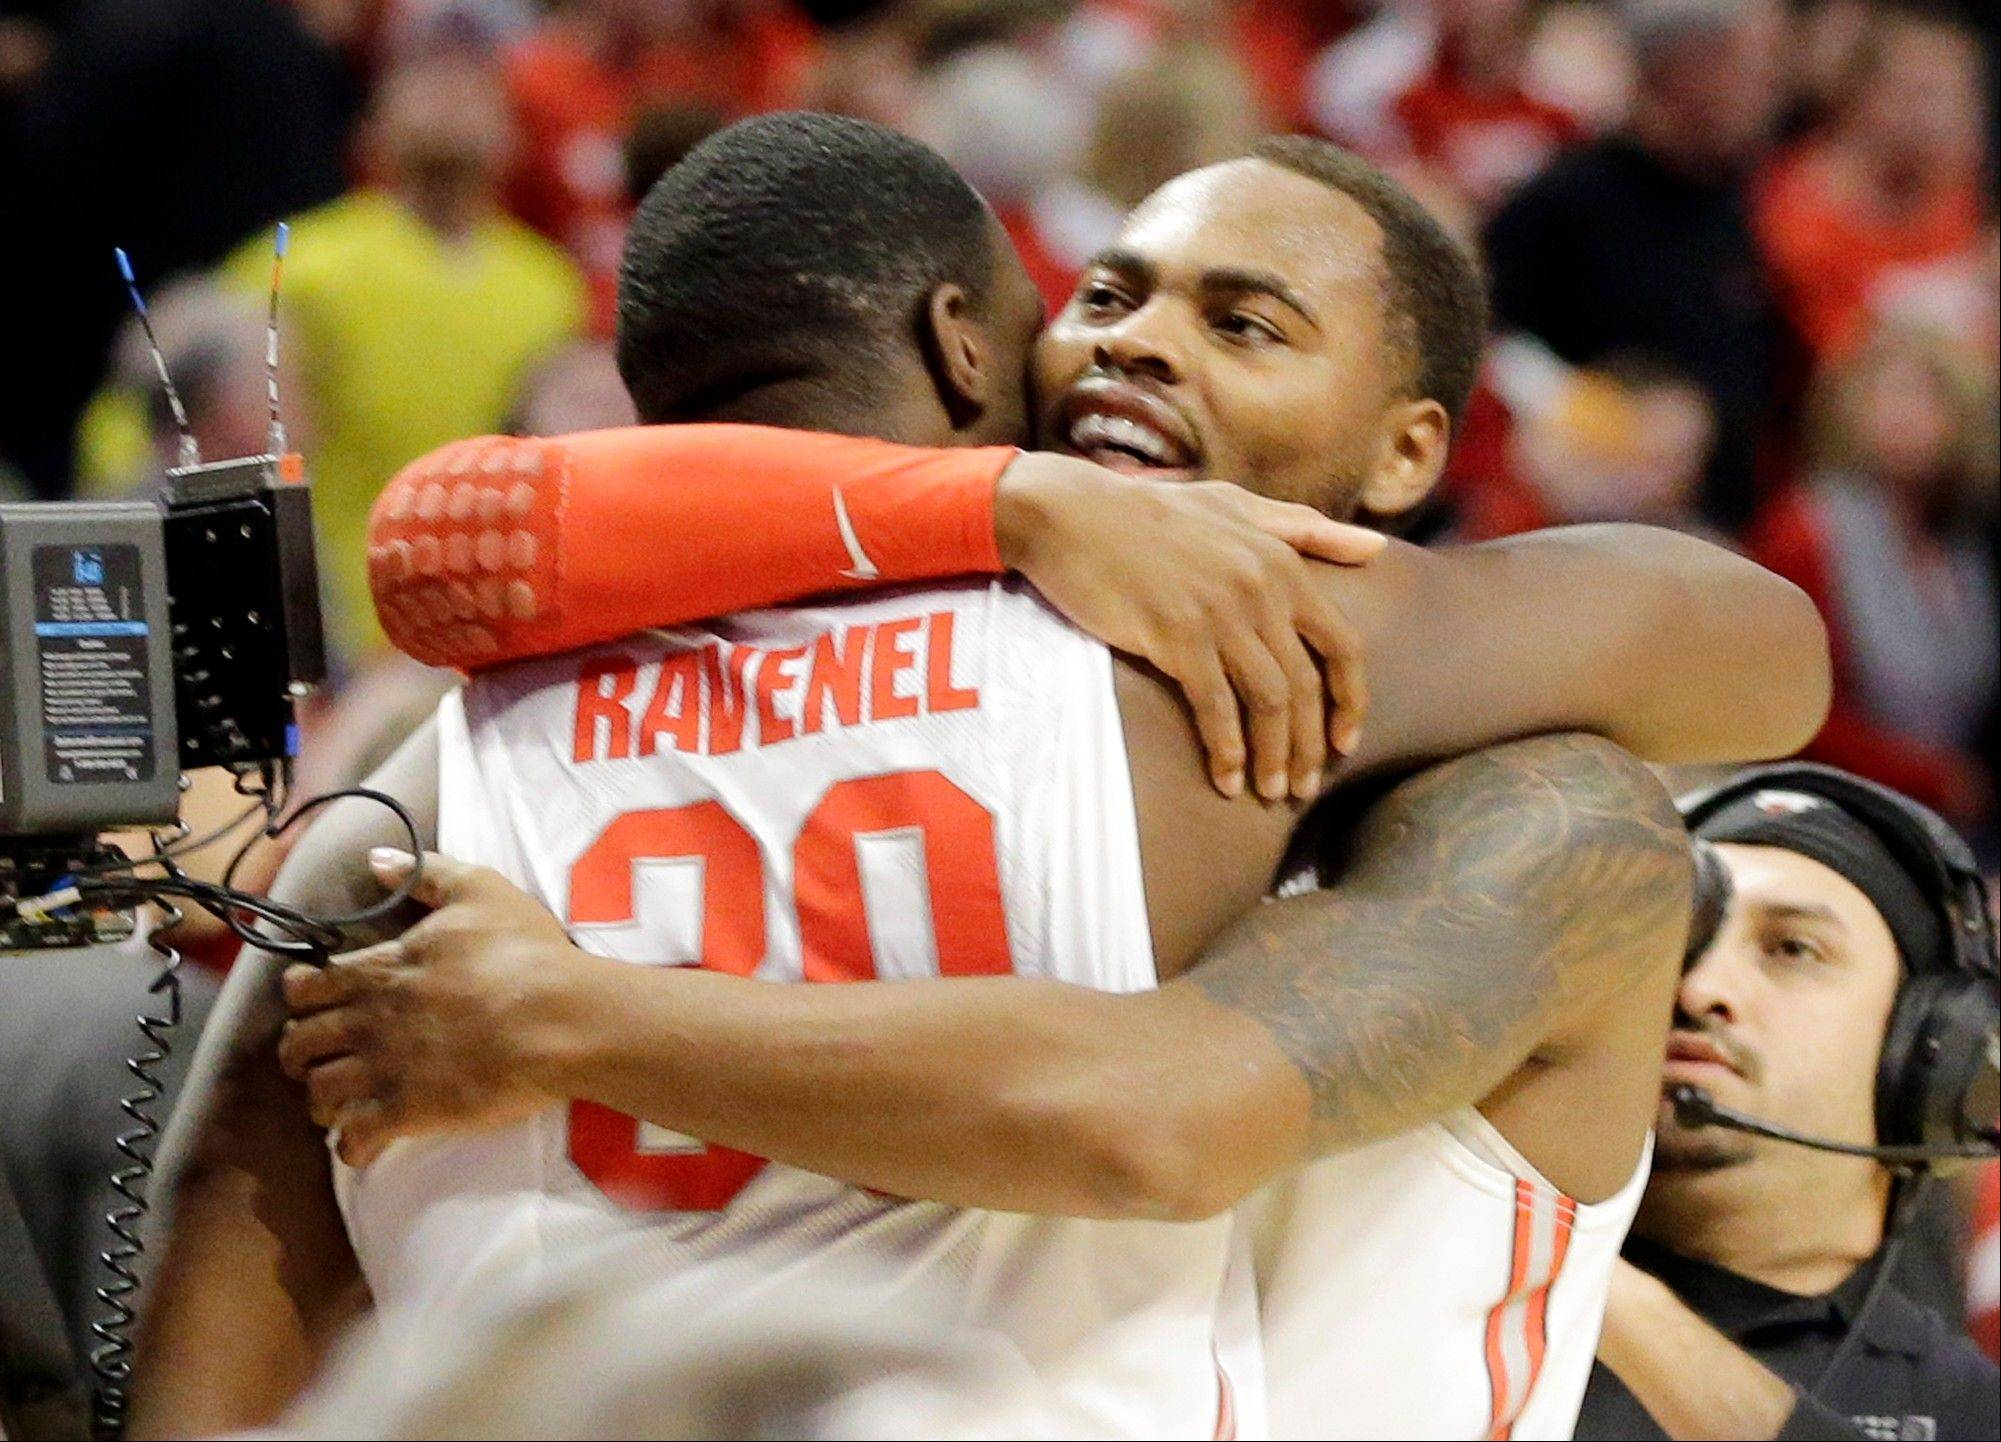 Ohio State forward Evan Ravenel and Ohio State forward Deshaun Thomas celebrate after an NCAA college basketball game against the Wisconsin in the championship of the Big Ten tournament Sunday, March 17, 2013, in Chicago. Ohio State won 50-43.